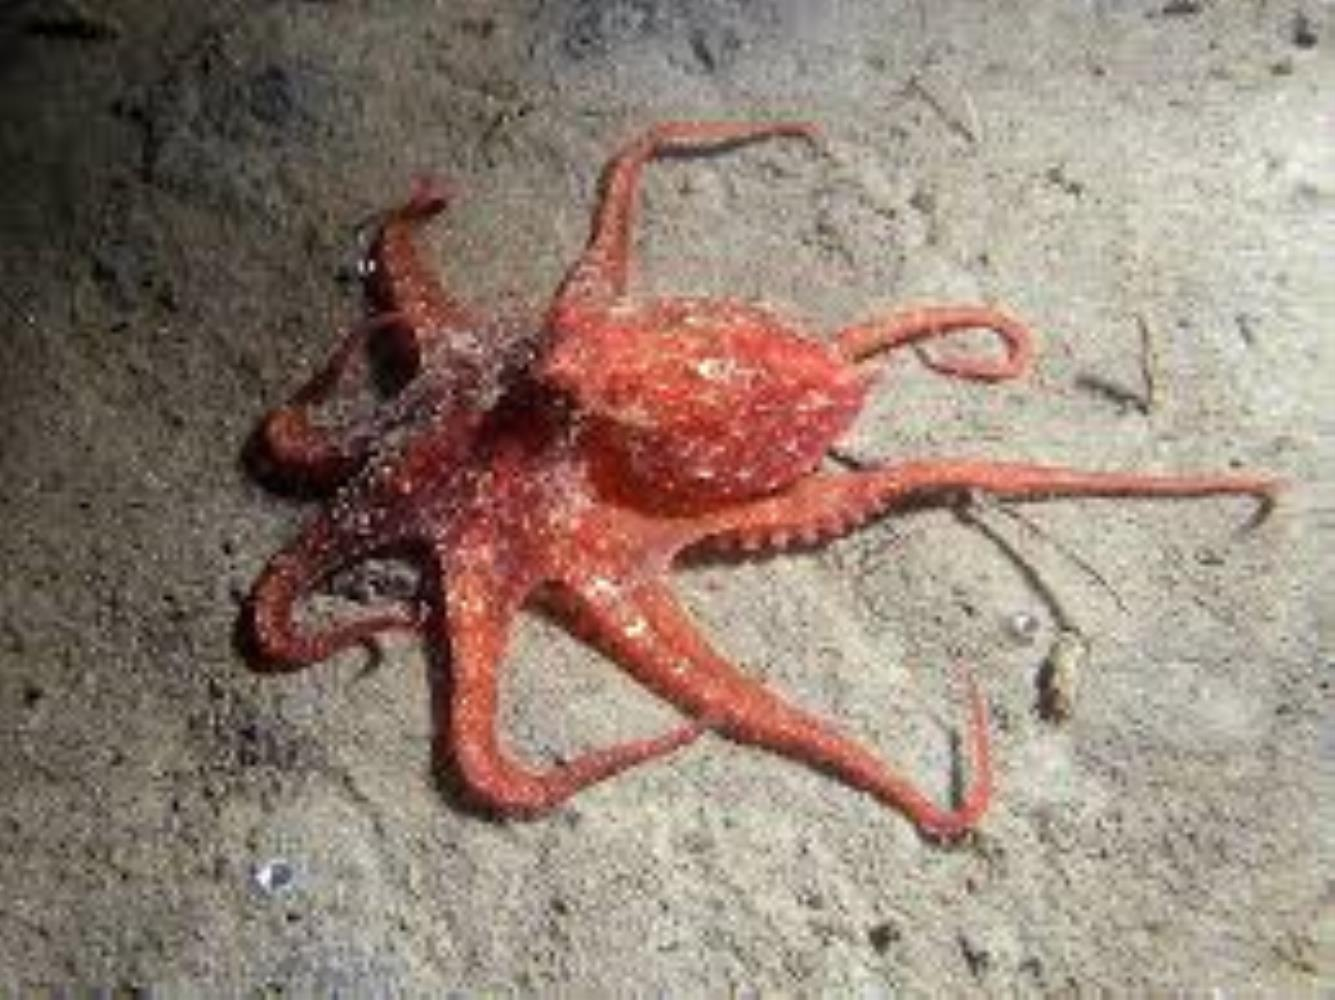 East Pacific red octopus